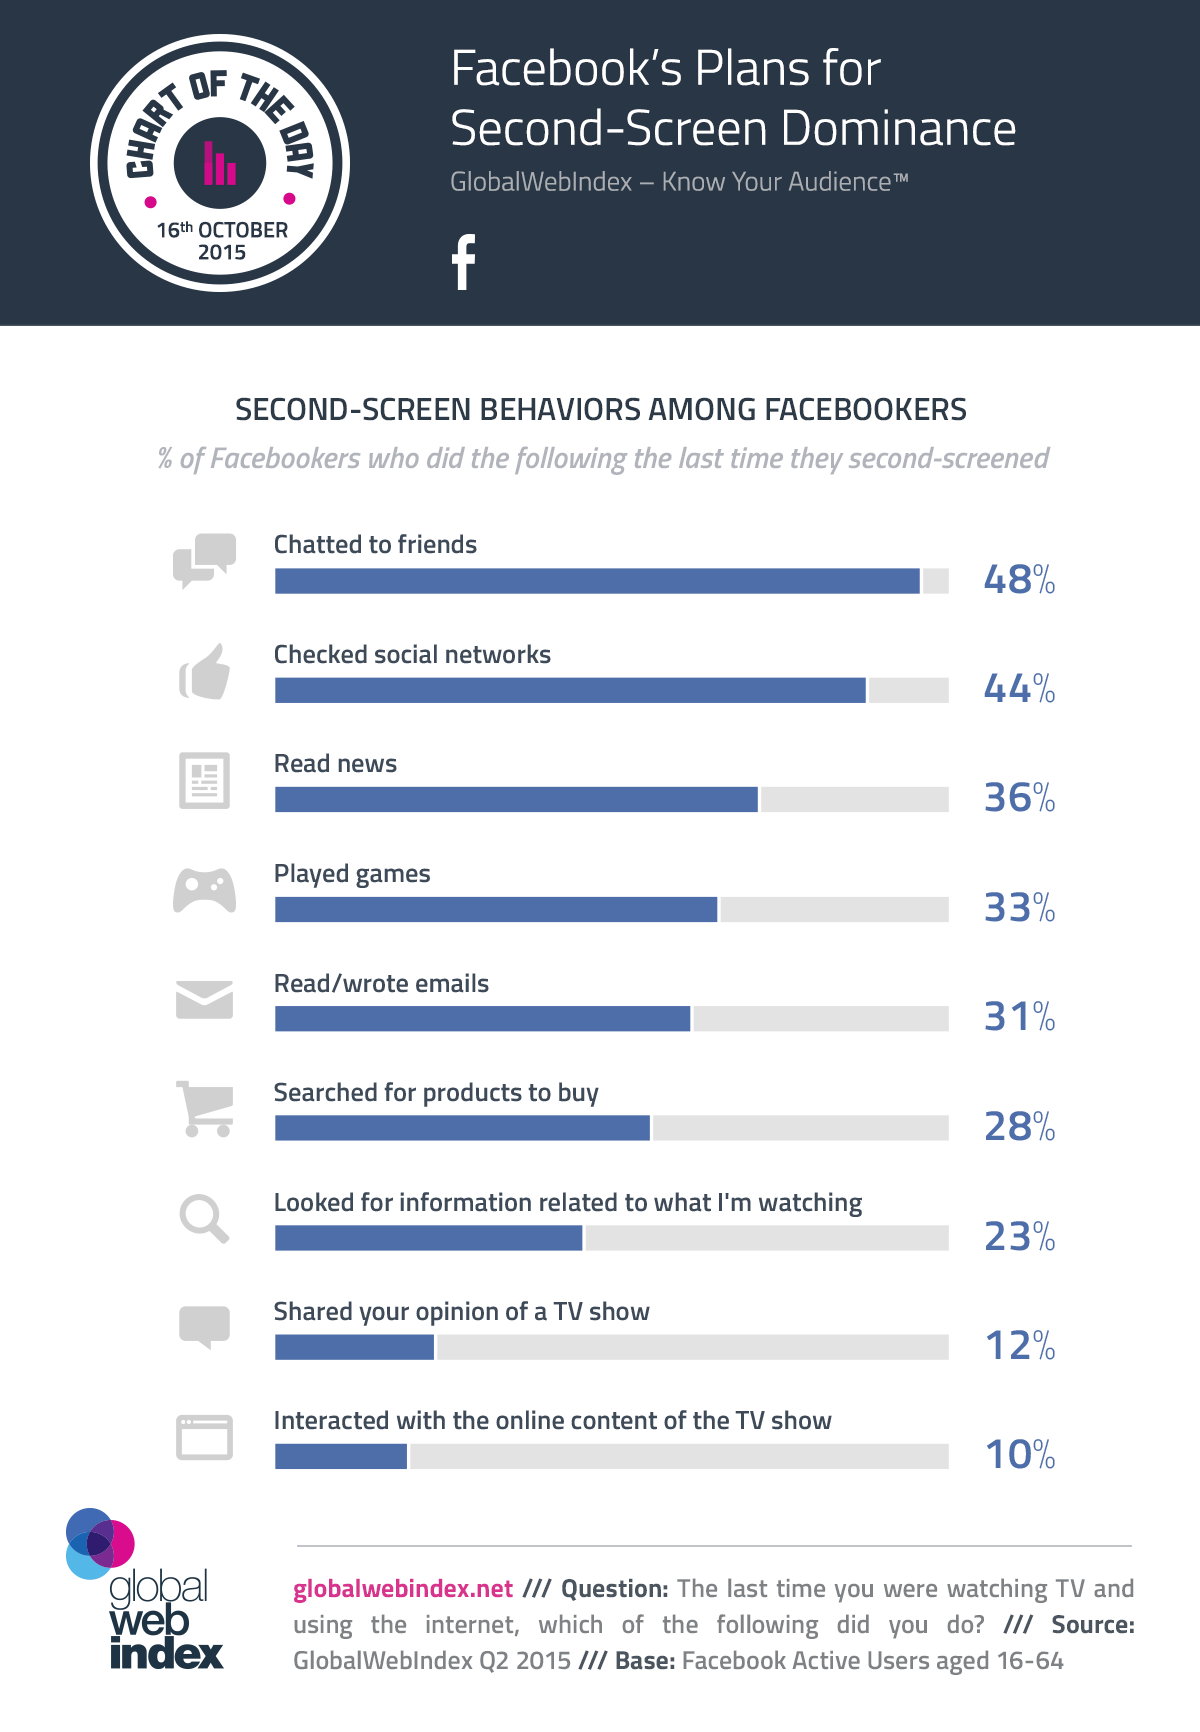 16th-Oct-2015-Facebooks-Plans-for-Second-Screen-Dominance